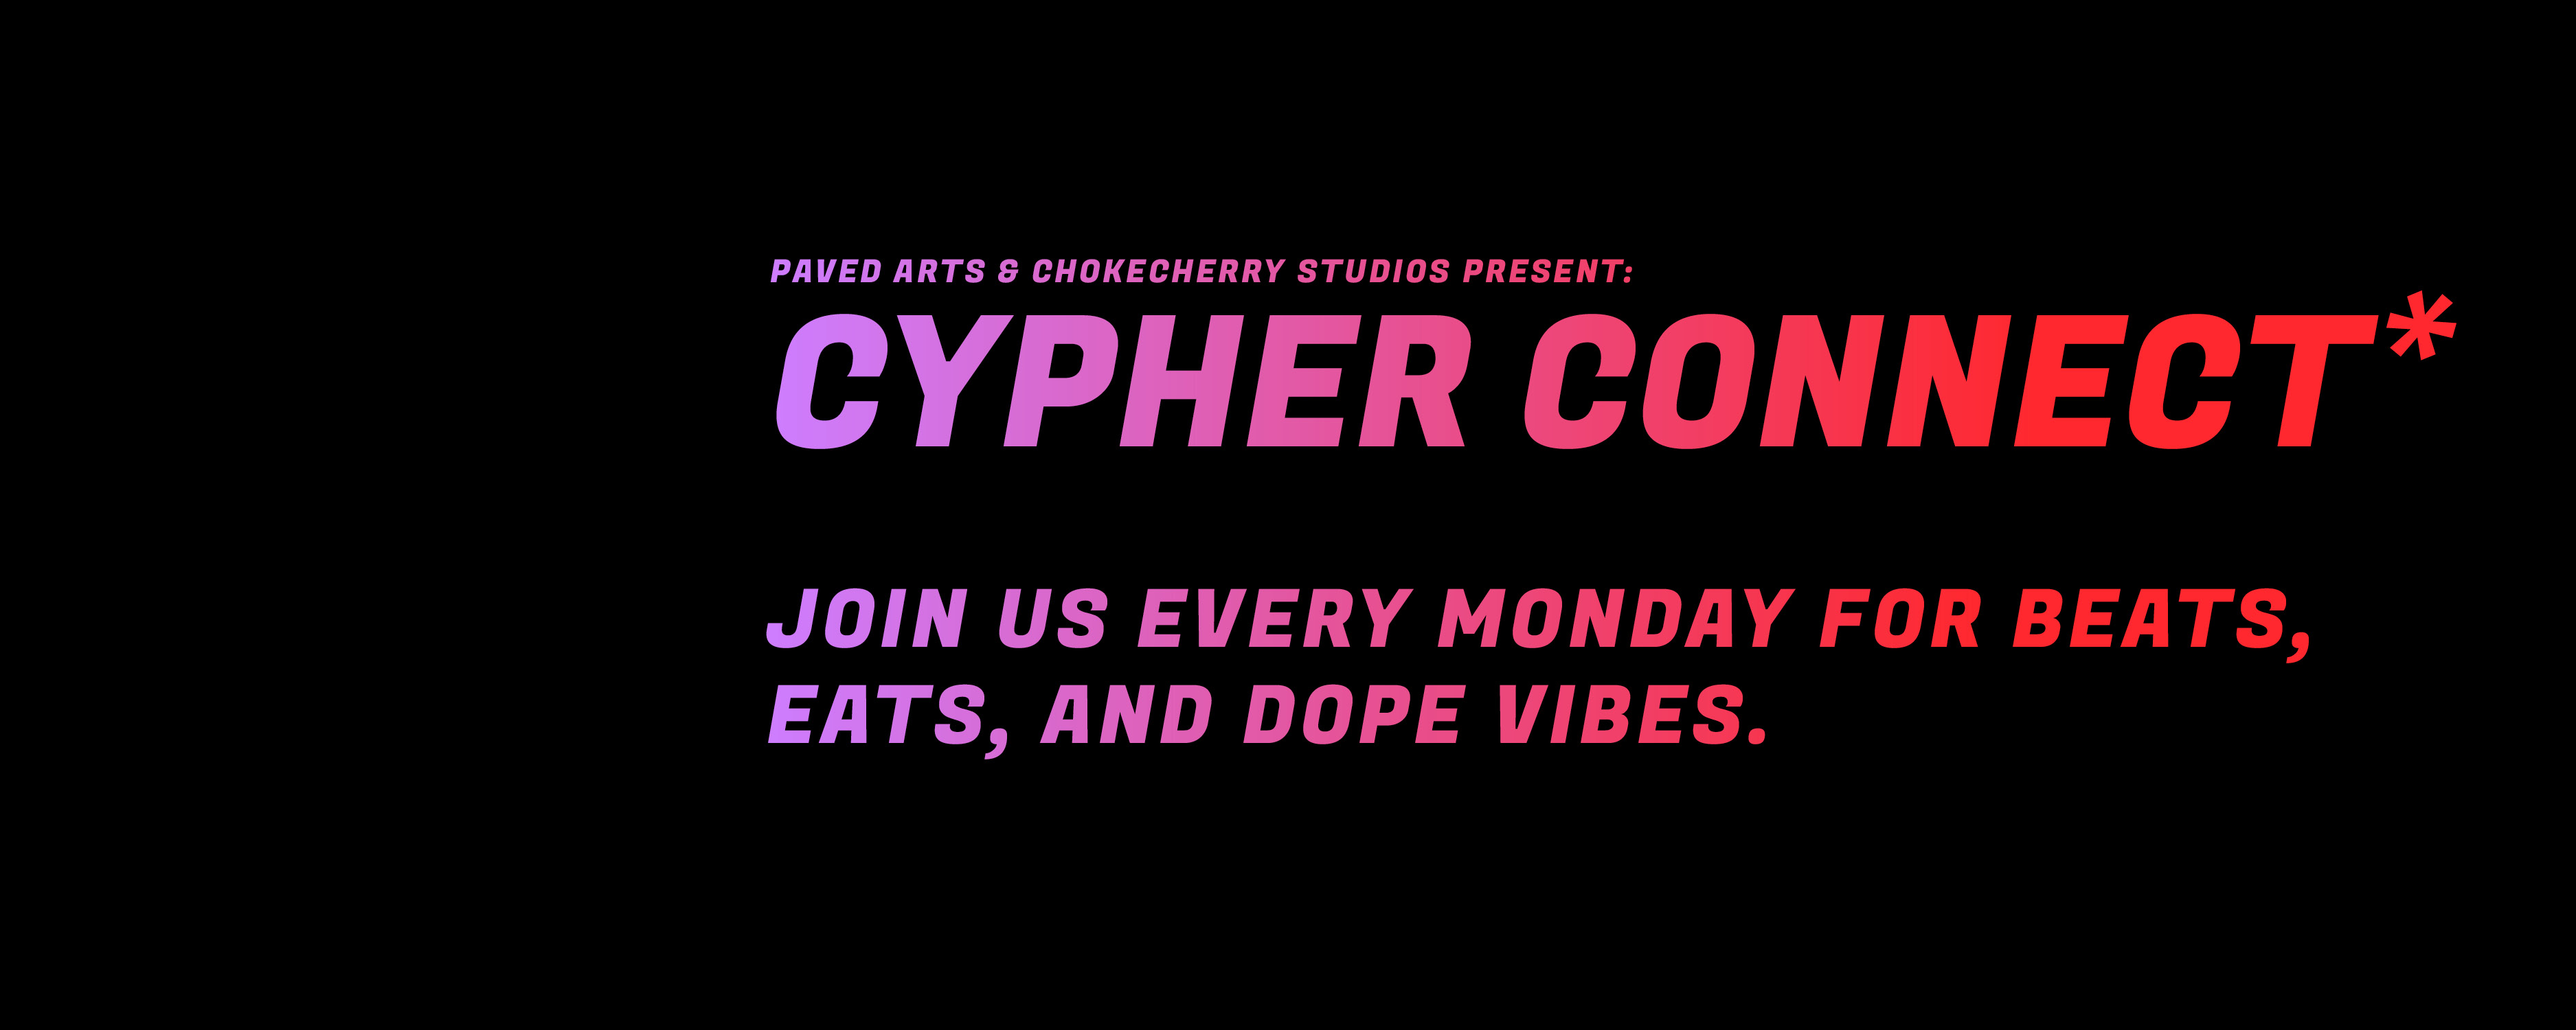 Cypher Connect*